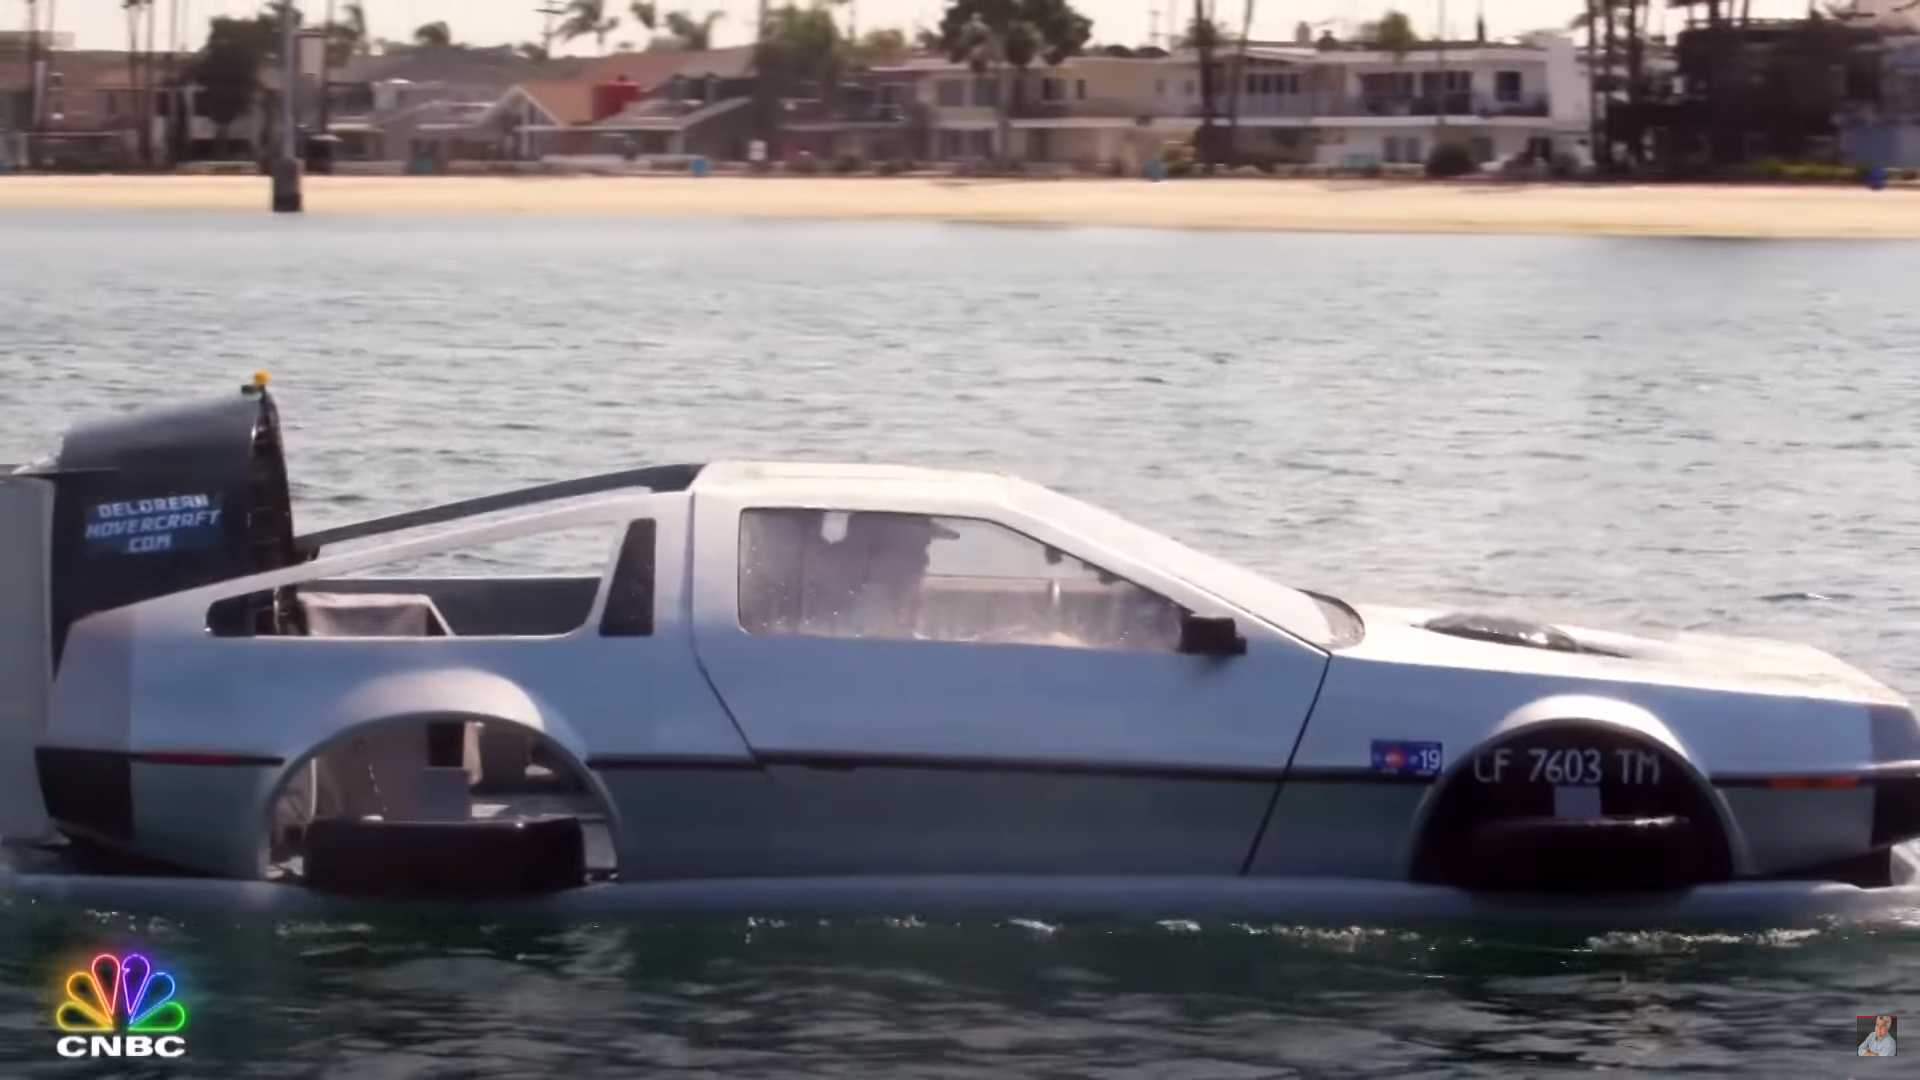 See Jay Leno live an '80's fantasy in this flying DeLorean hovercraft